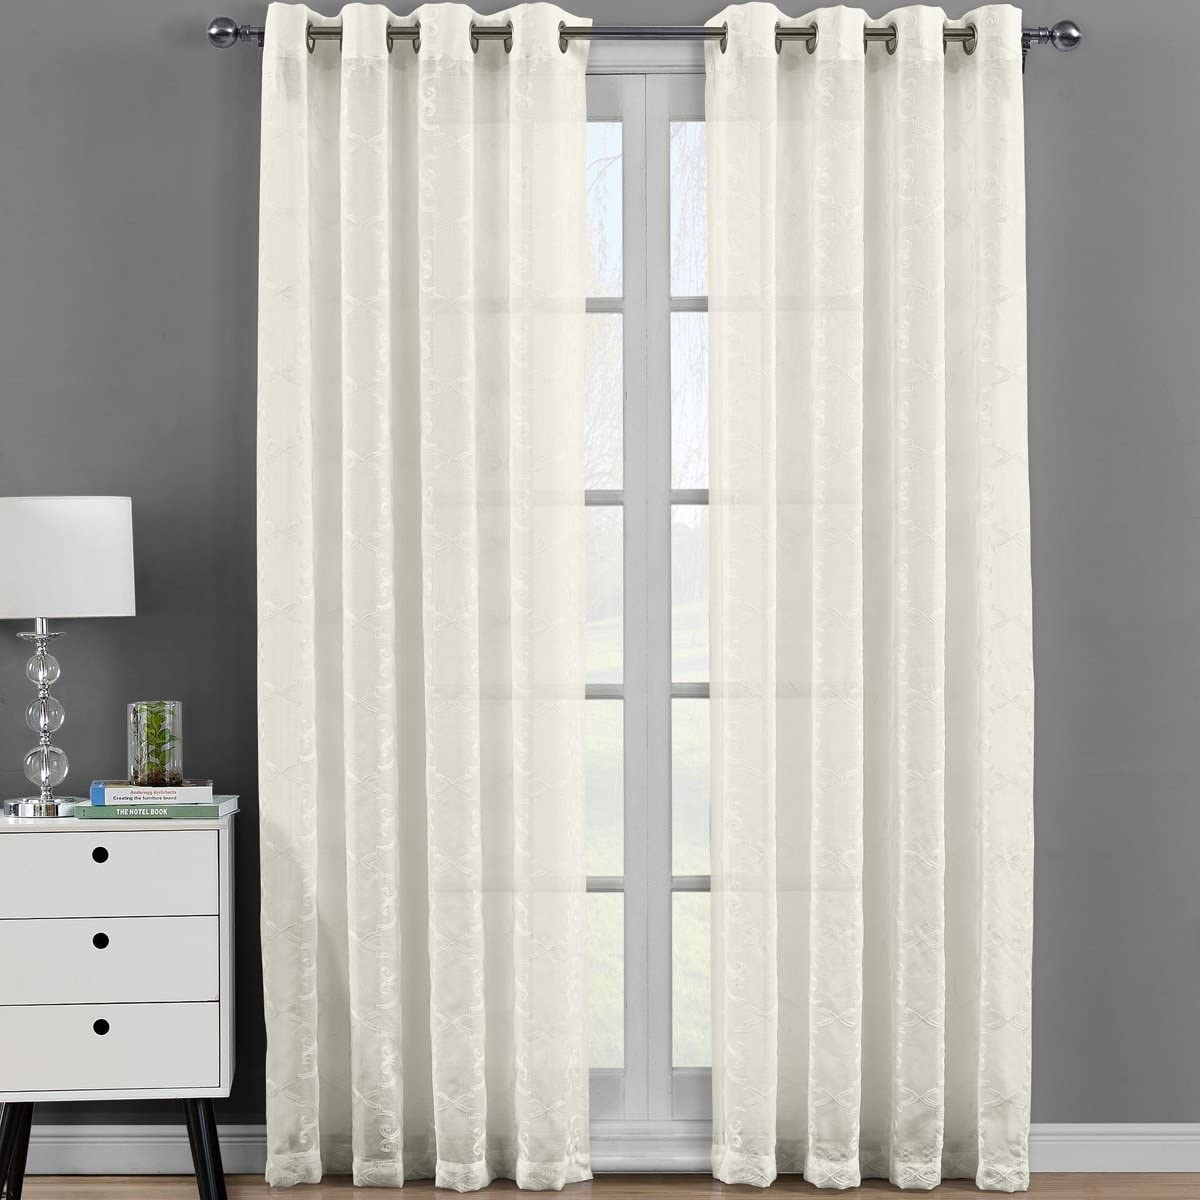 Royal Bedding Melanie Beige Sheer Panels, Top Grommet Embroidered Sheer Curtain Panels, Set of 2, 54Wx108L inches Each